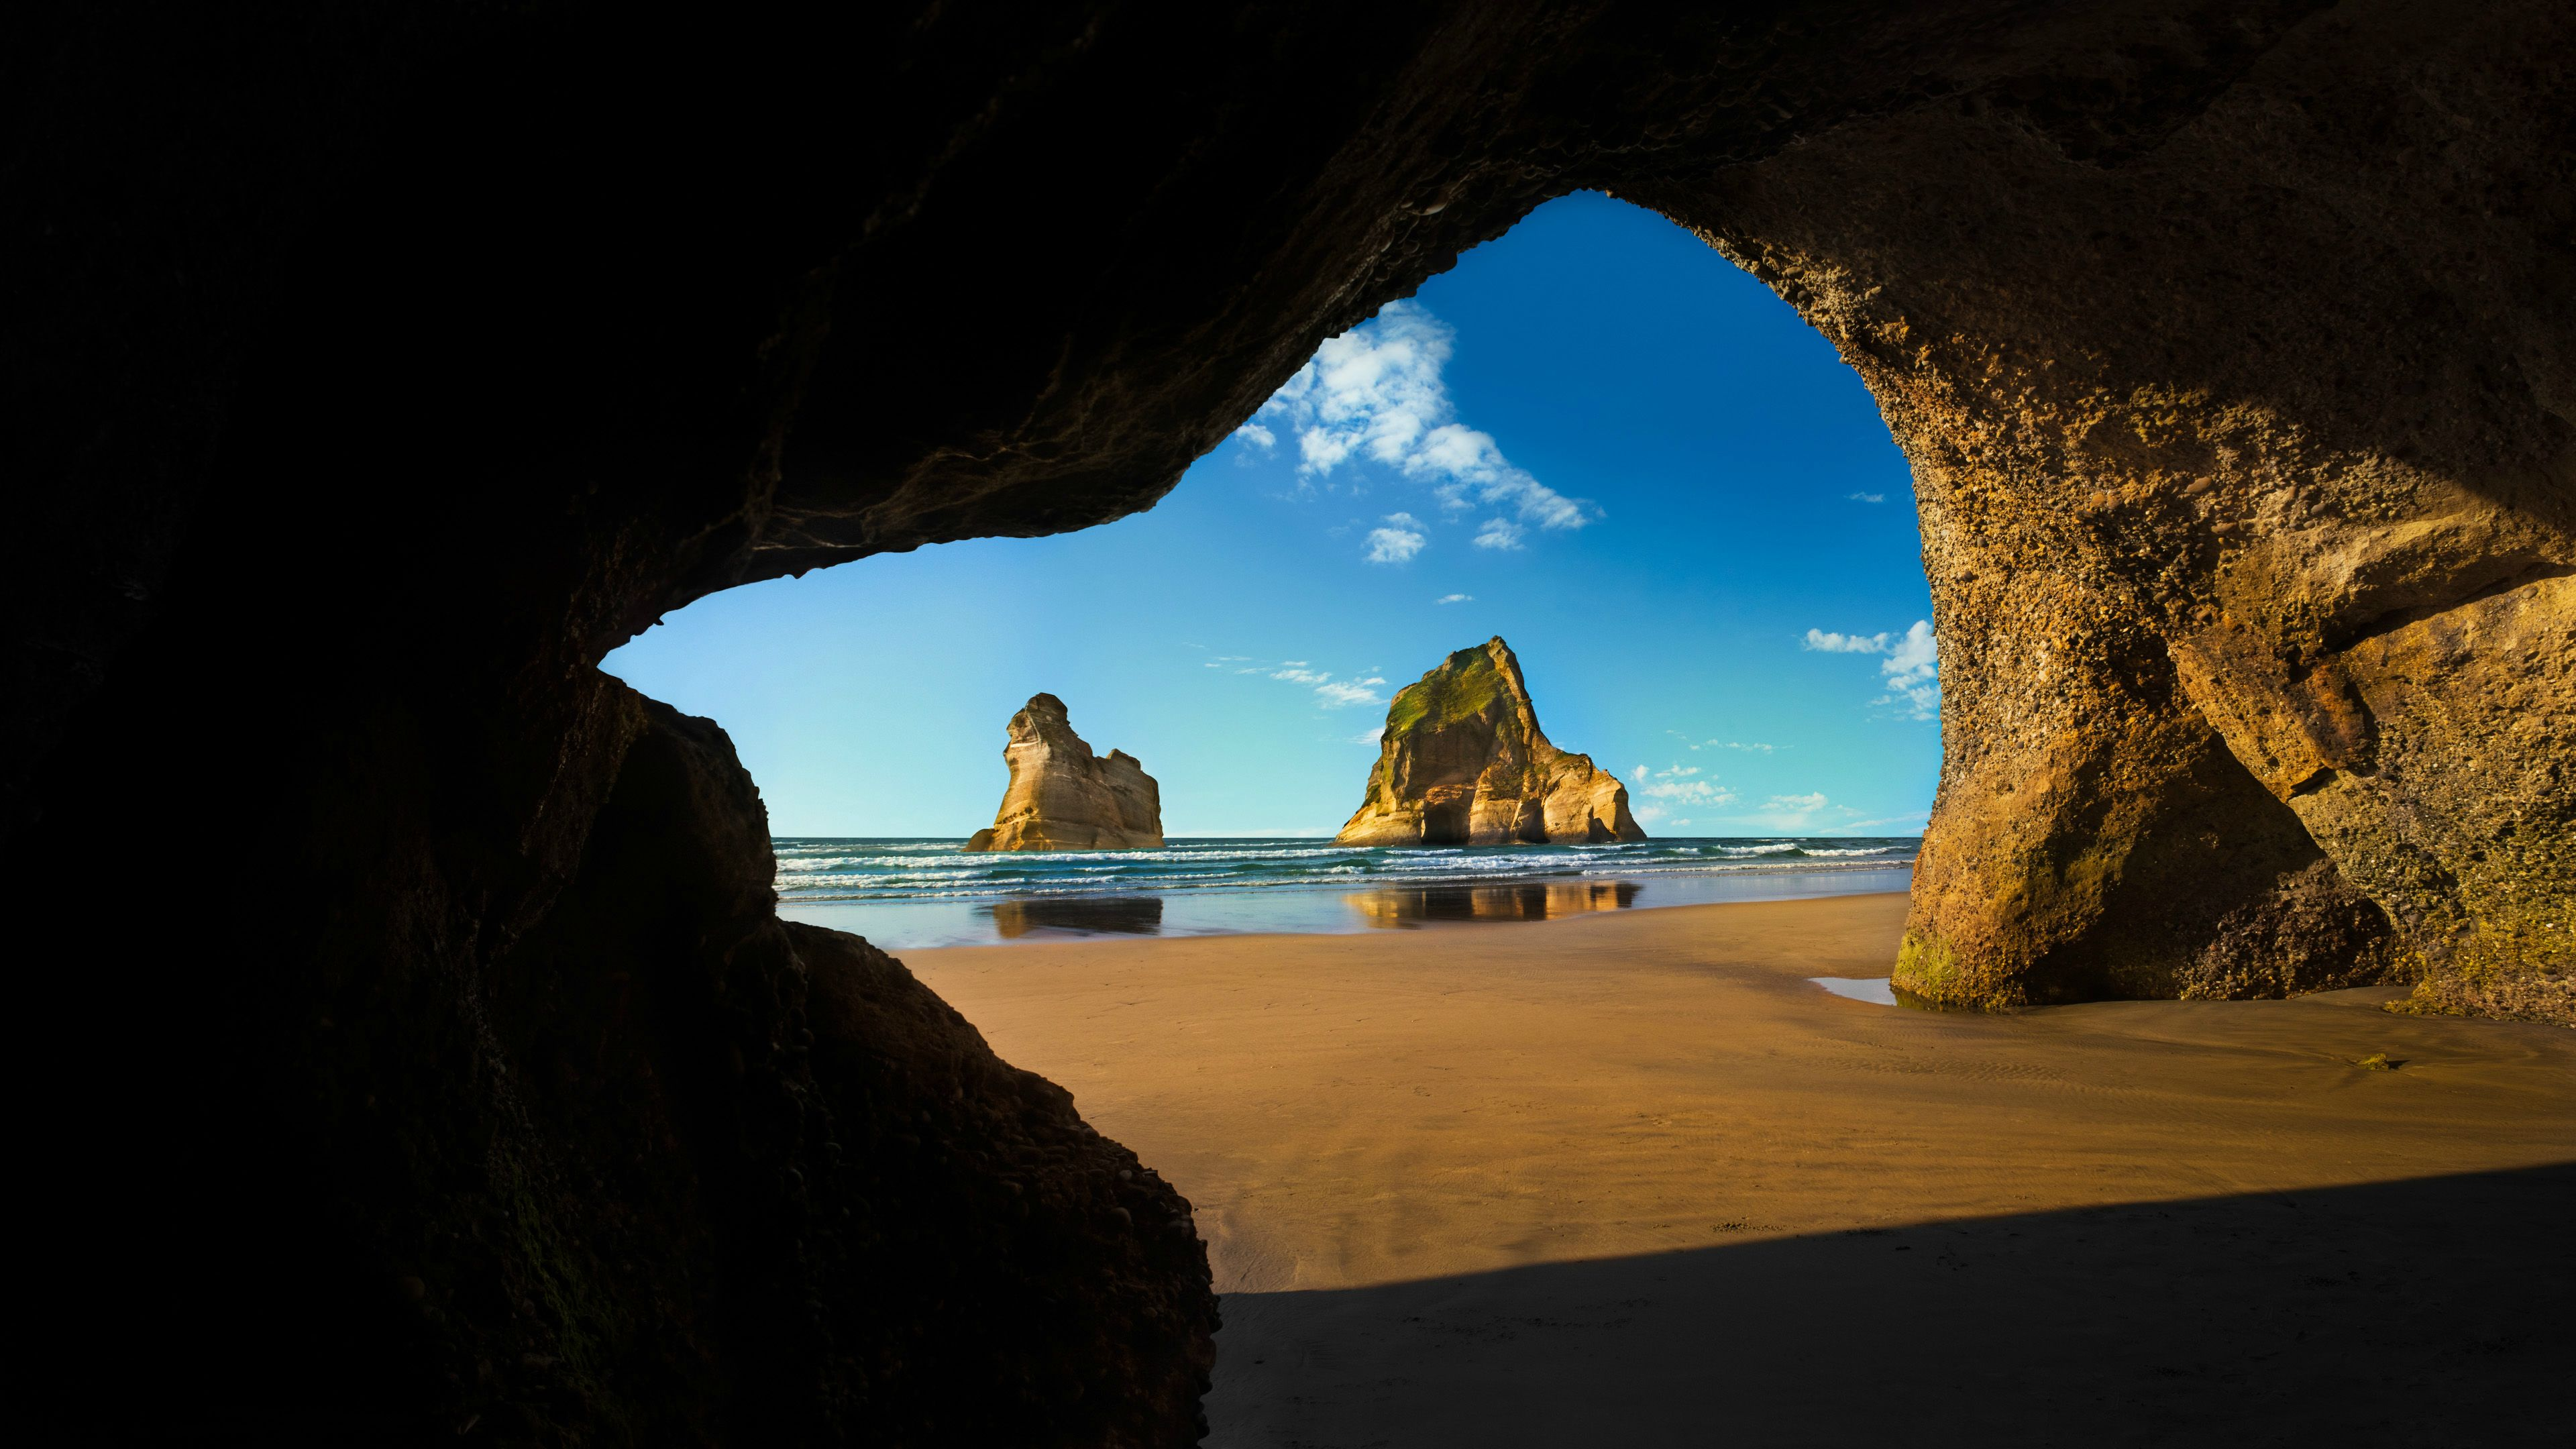 lock screen wallpaper,natural arch,nature,formation,rock,sky